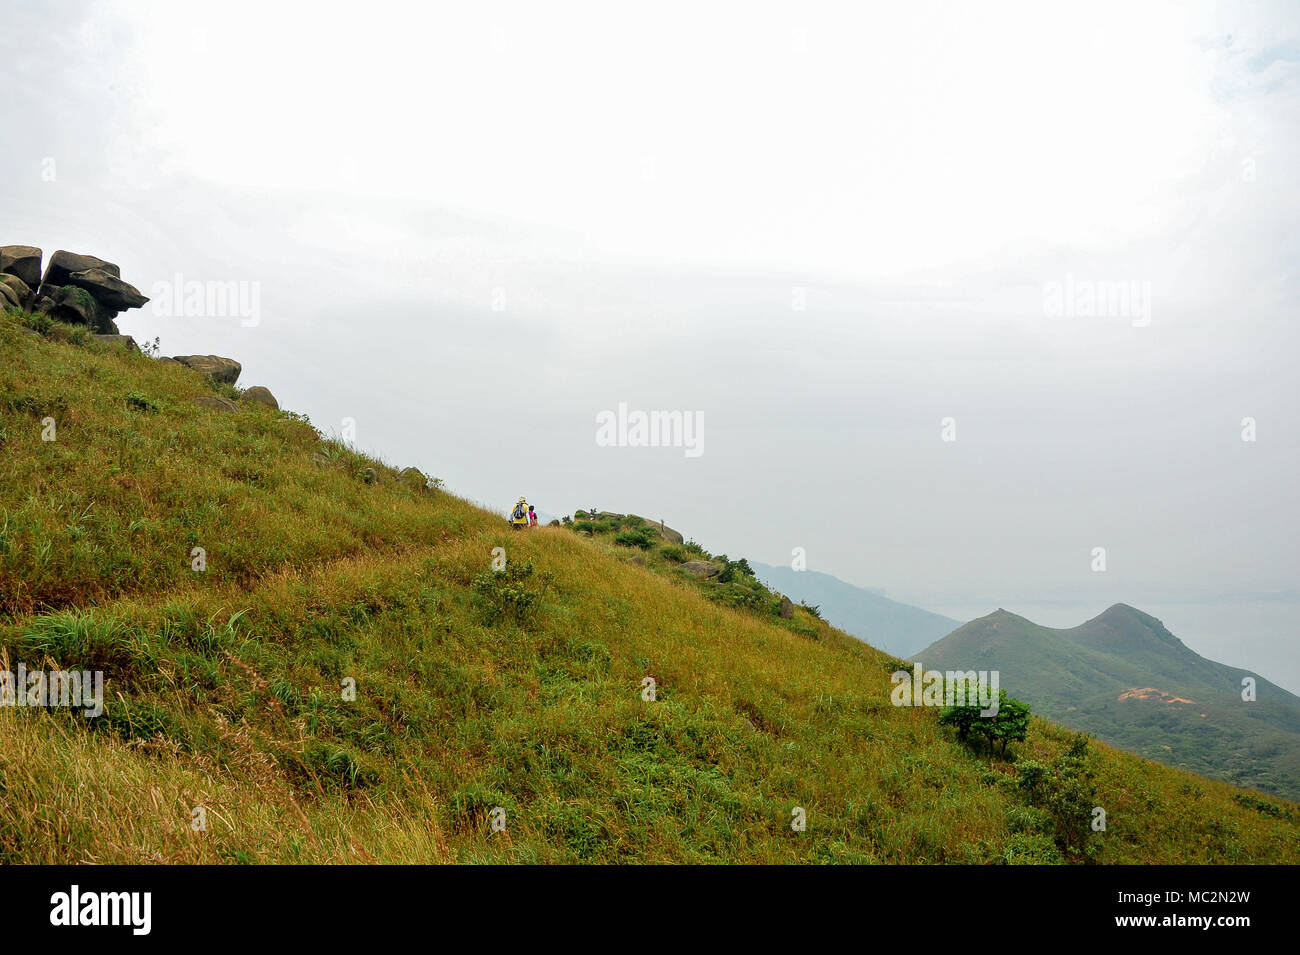 Hikers on mountain trail, Silver Mine Bay, Lantau Island, Hong Kong. Panoramic views along grassy slope to distant peaks - Stock Image